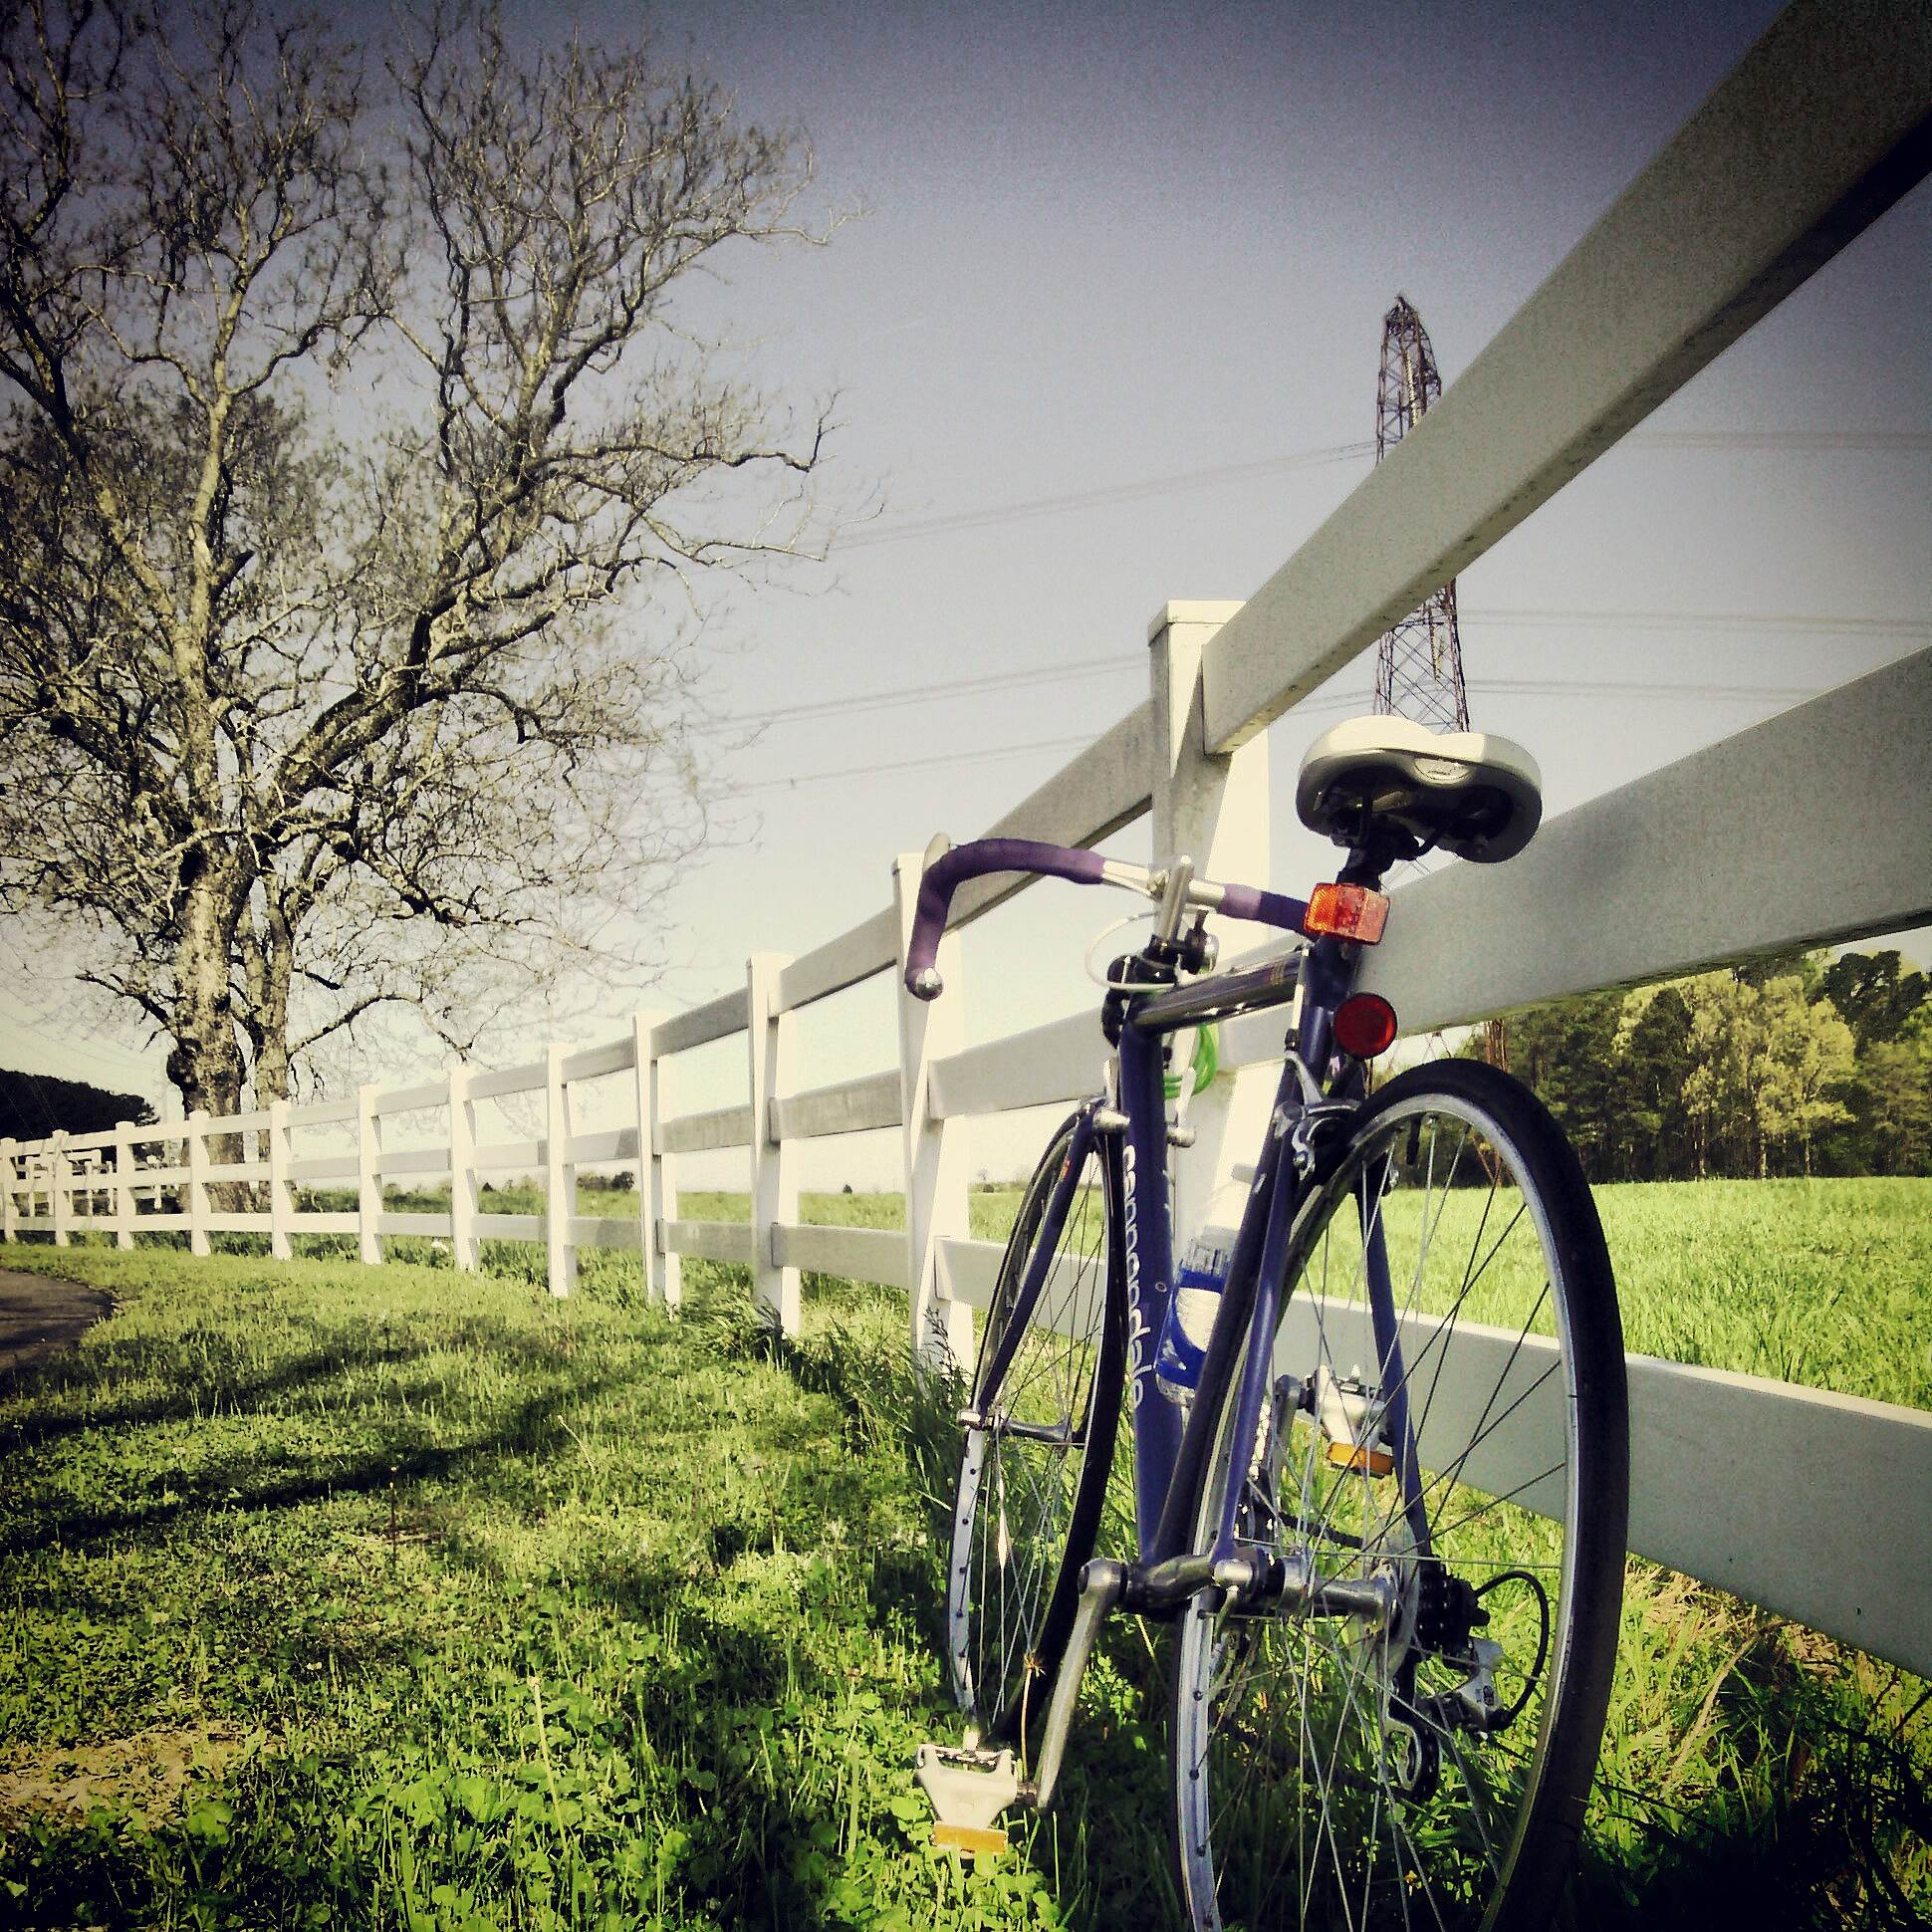 Neuse River Trail Early Morning Ride I took this picture one morning when I went riding on the Clayton side of the Neuse River Trail. It was such a beautiful morning and this is one of my favorite parts of the trail.